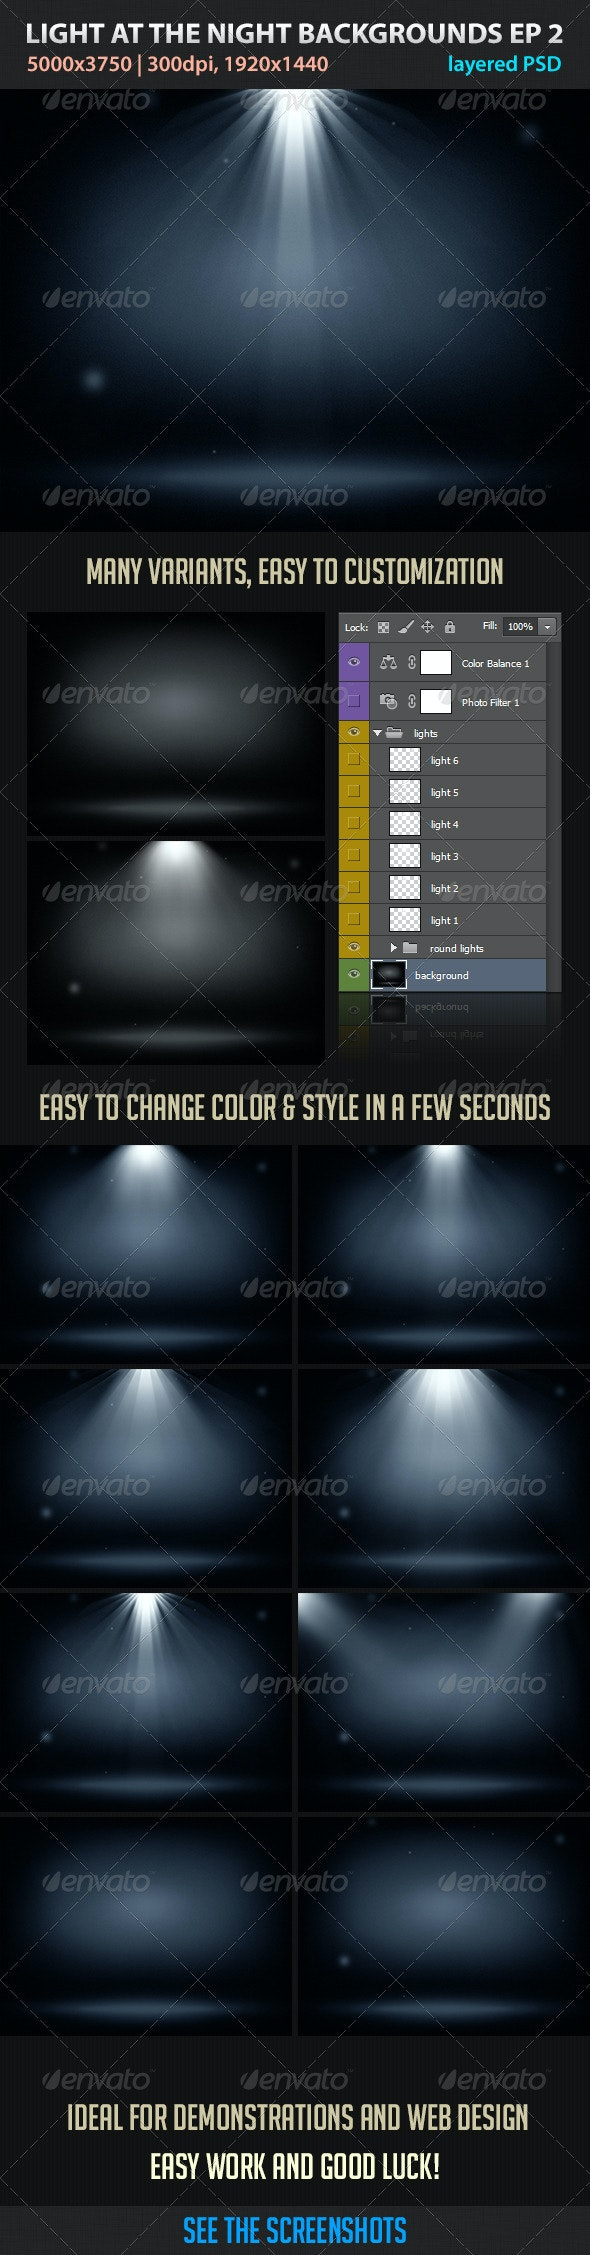 Light at the Night Backgrounds EP2 - Abstract Backgrounds